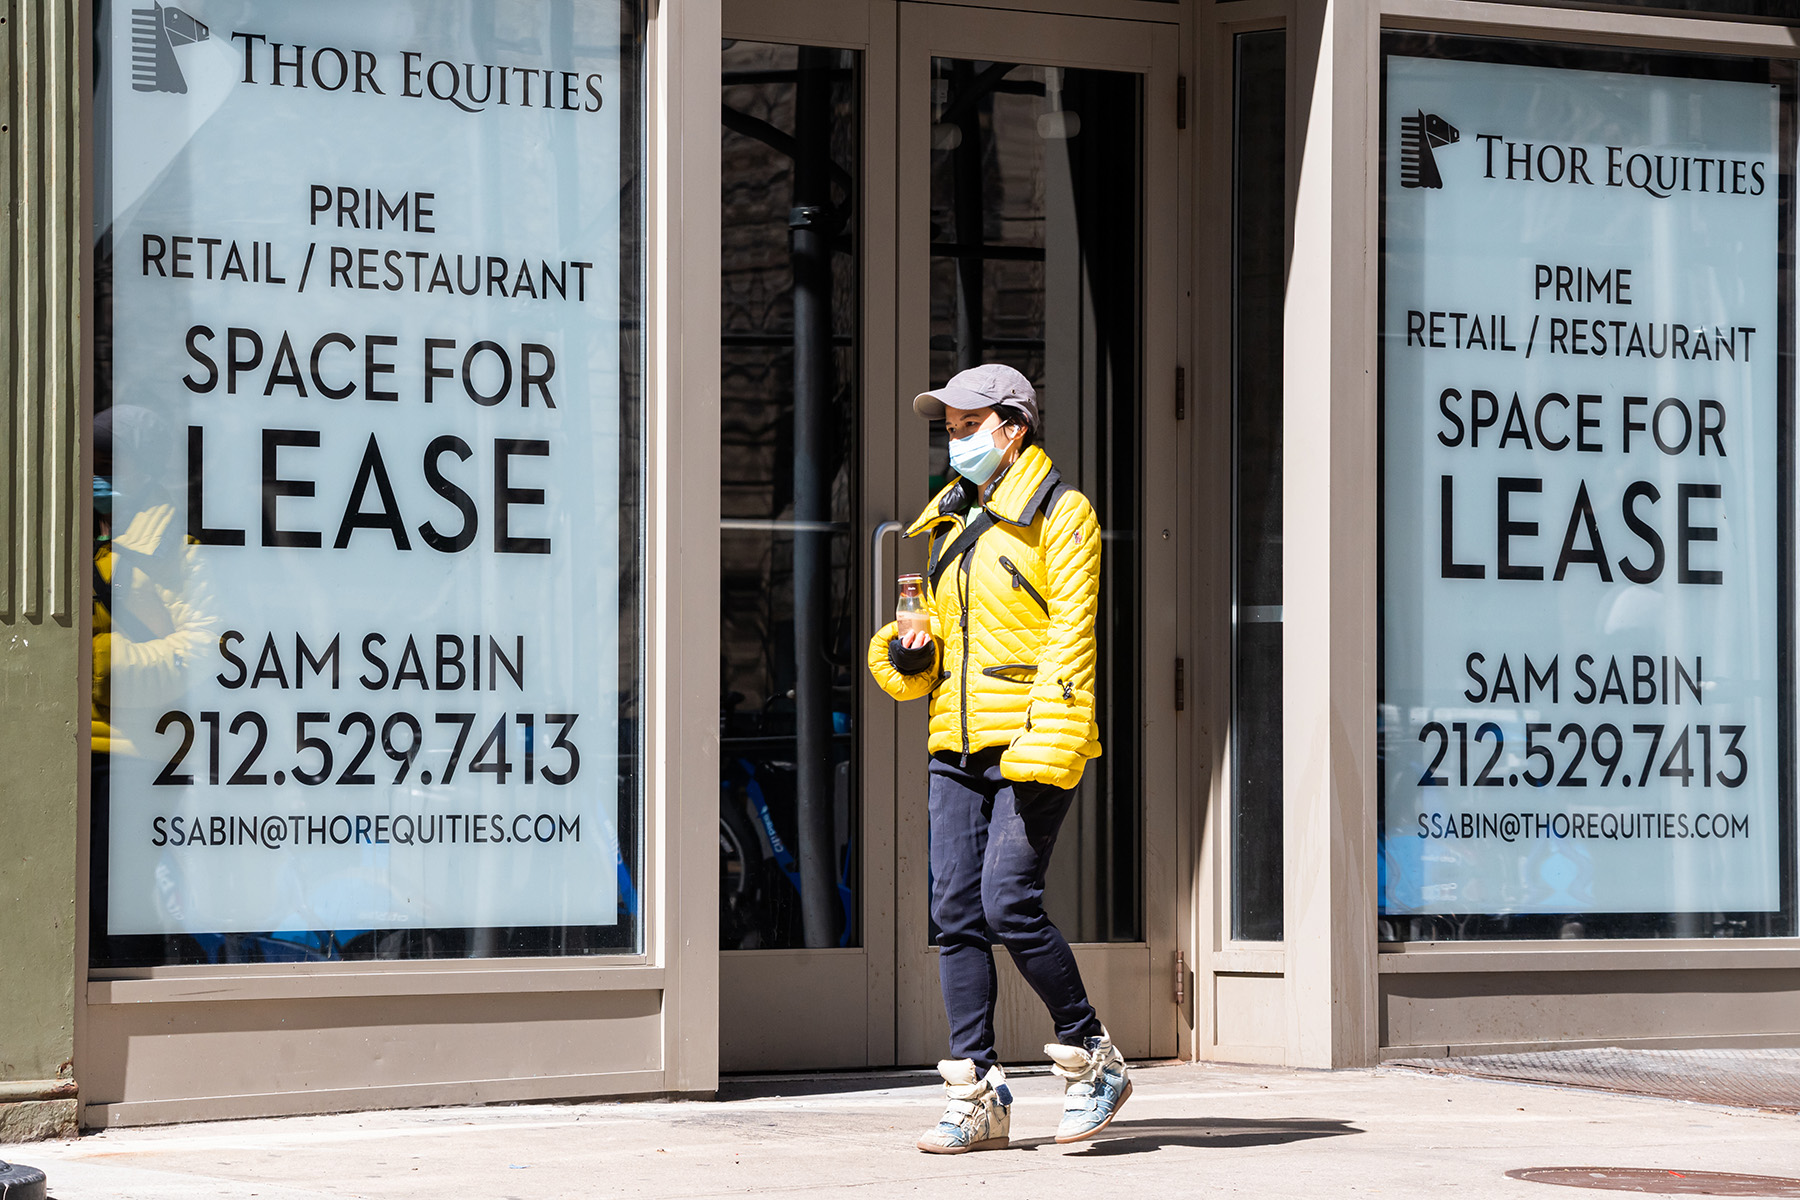 The coronavirus outbreak caused the shut down of retail businesses and restaurants, prompting owners and landlords to try to change their lease terms to include losses from a pandemic. (Getty)